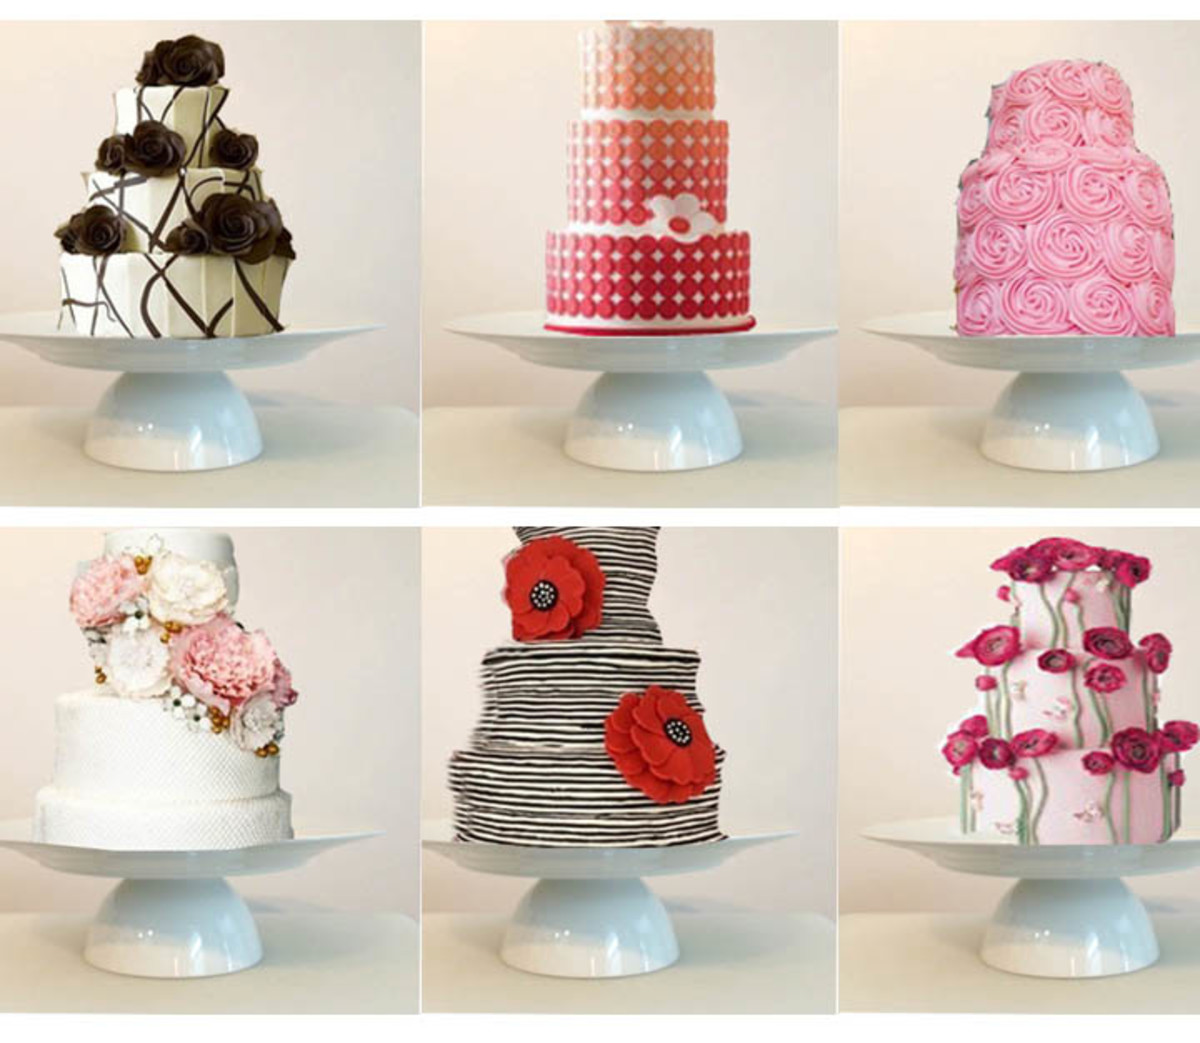 Diy Cake Stands For Only A Few Dollars You Can Make A Cake Stand That Ll Wow The Hostess Feltmagnet Crafts